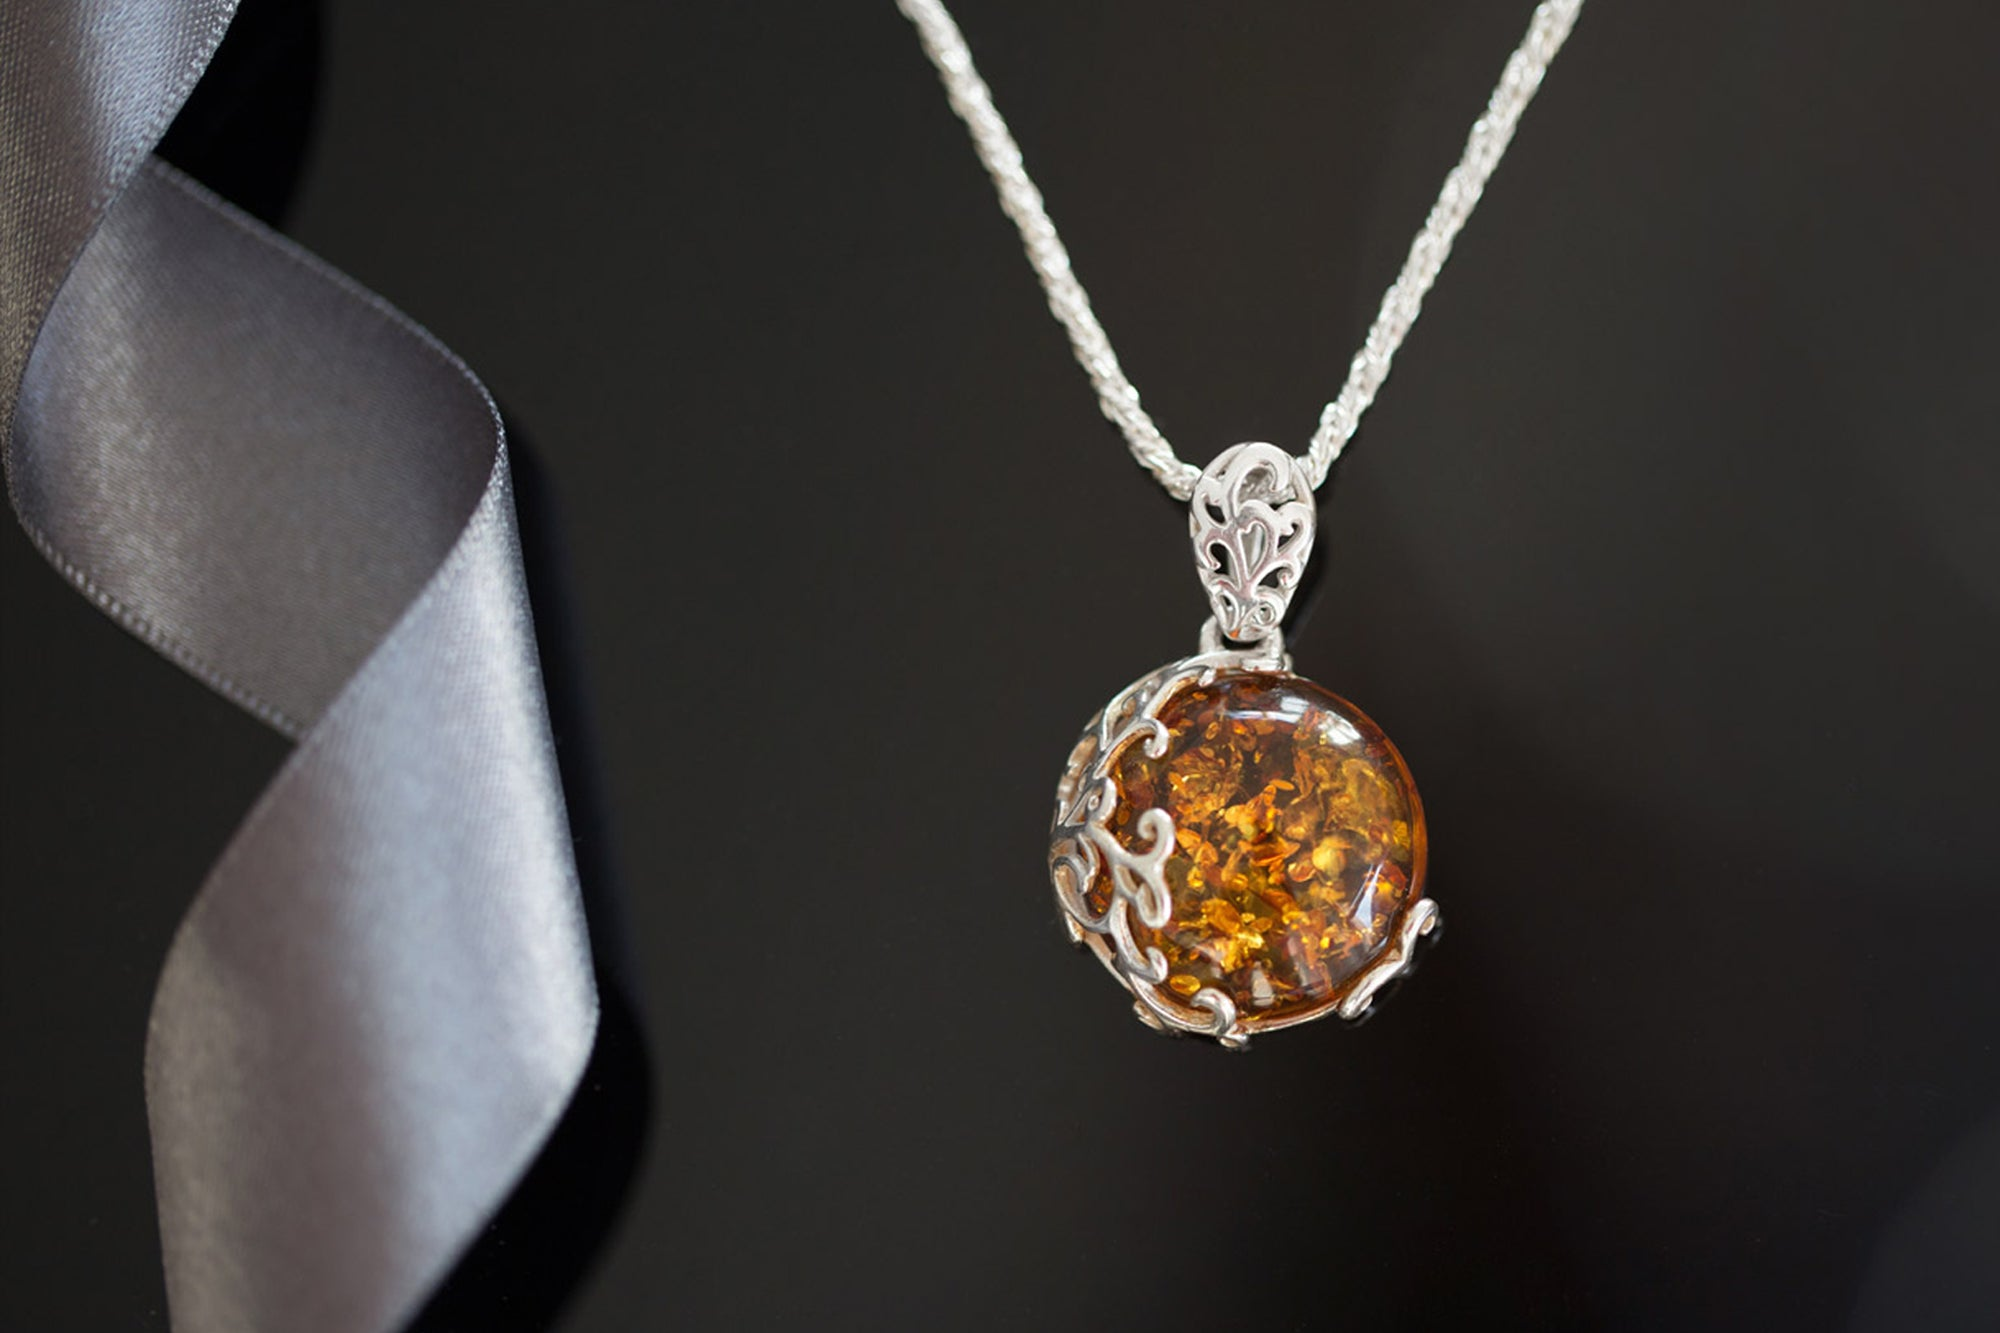 Fancy a Black Friday Gift? FREE Baltic Beauty Filigree Amber Pendant!